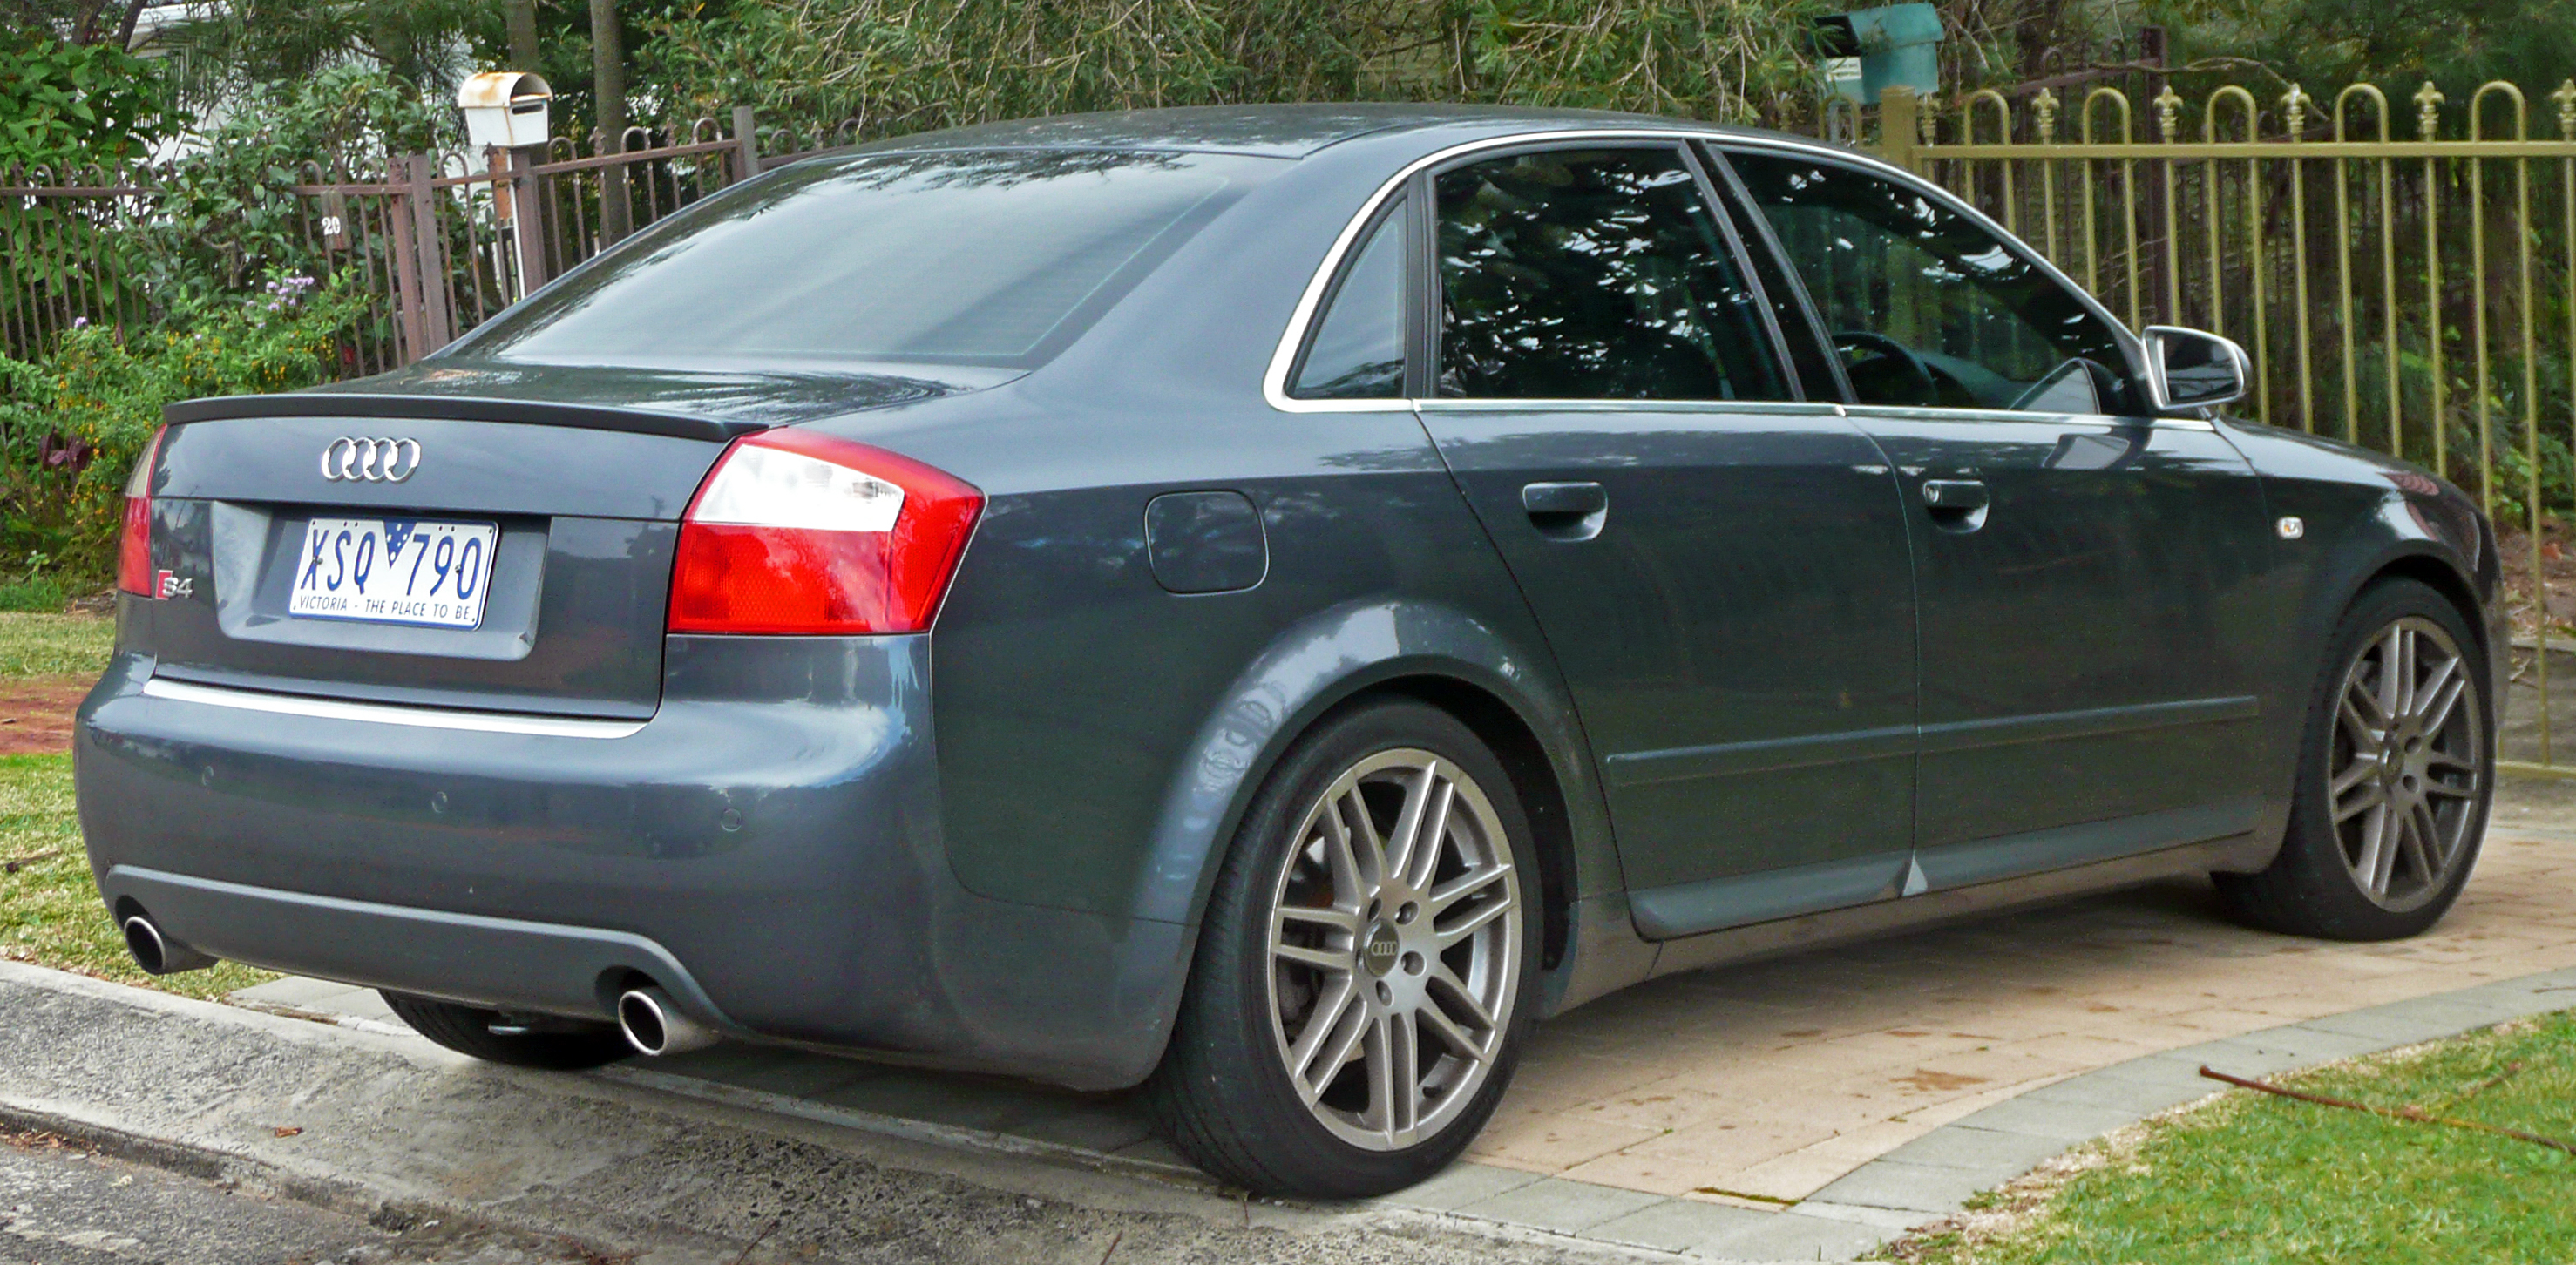 File:2003-2005 Audi S4 (B6) sedan 02.jpg - Wikimedia Commons